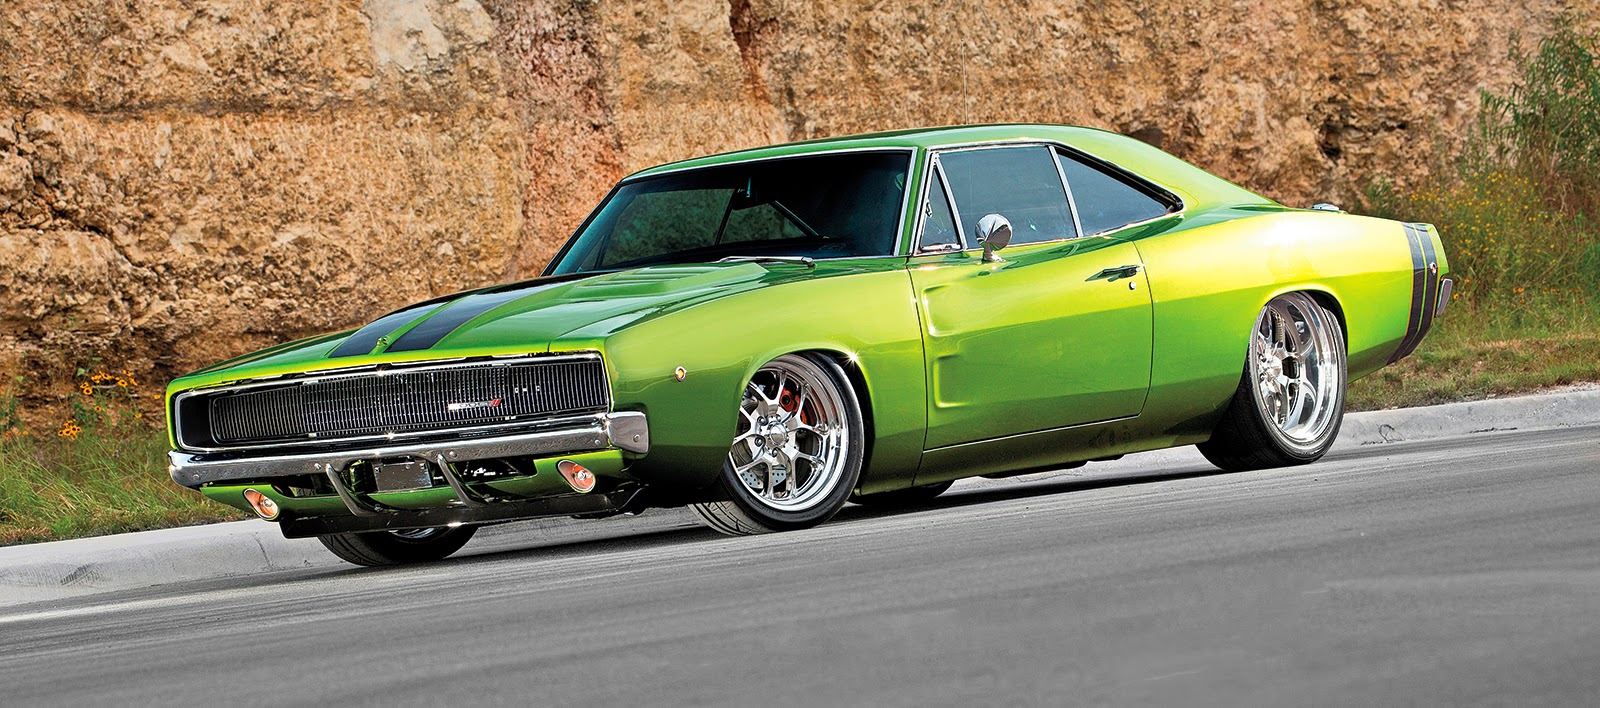 classic american cars dodge charger 2nd gen 1968 1970. Black Bedroom Furniture Sets. Home Design Ideas